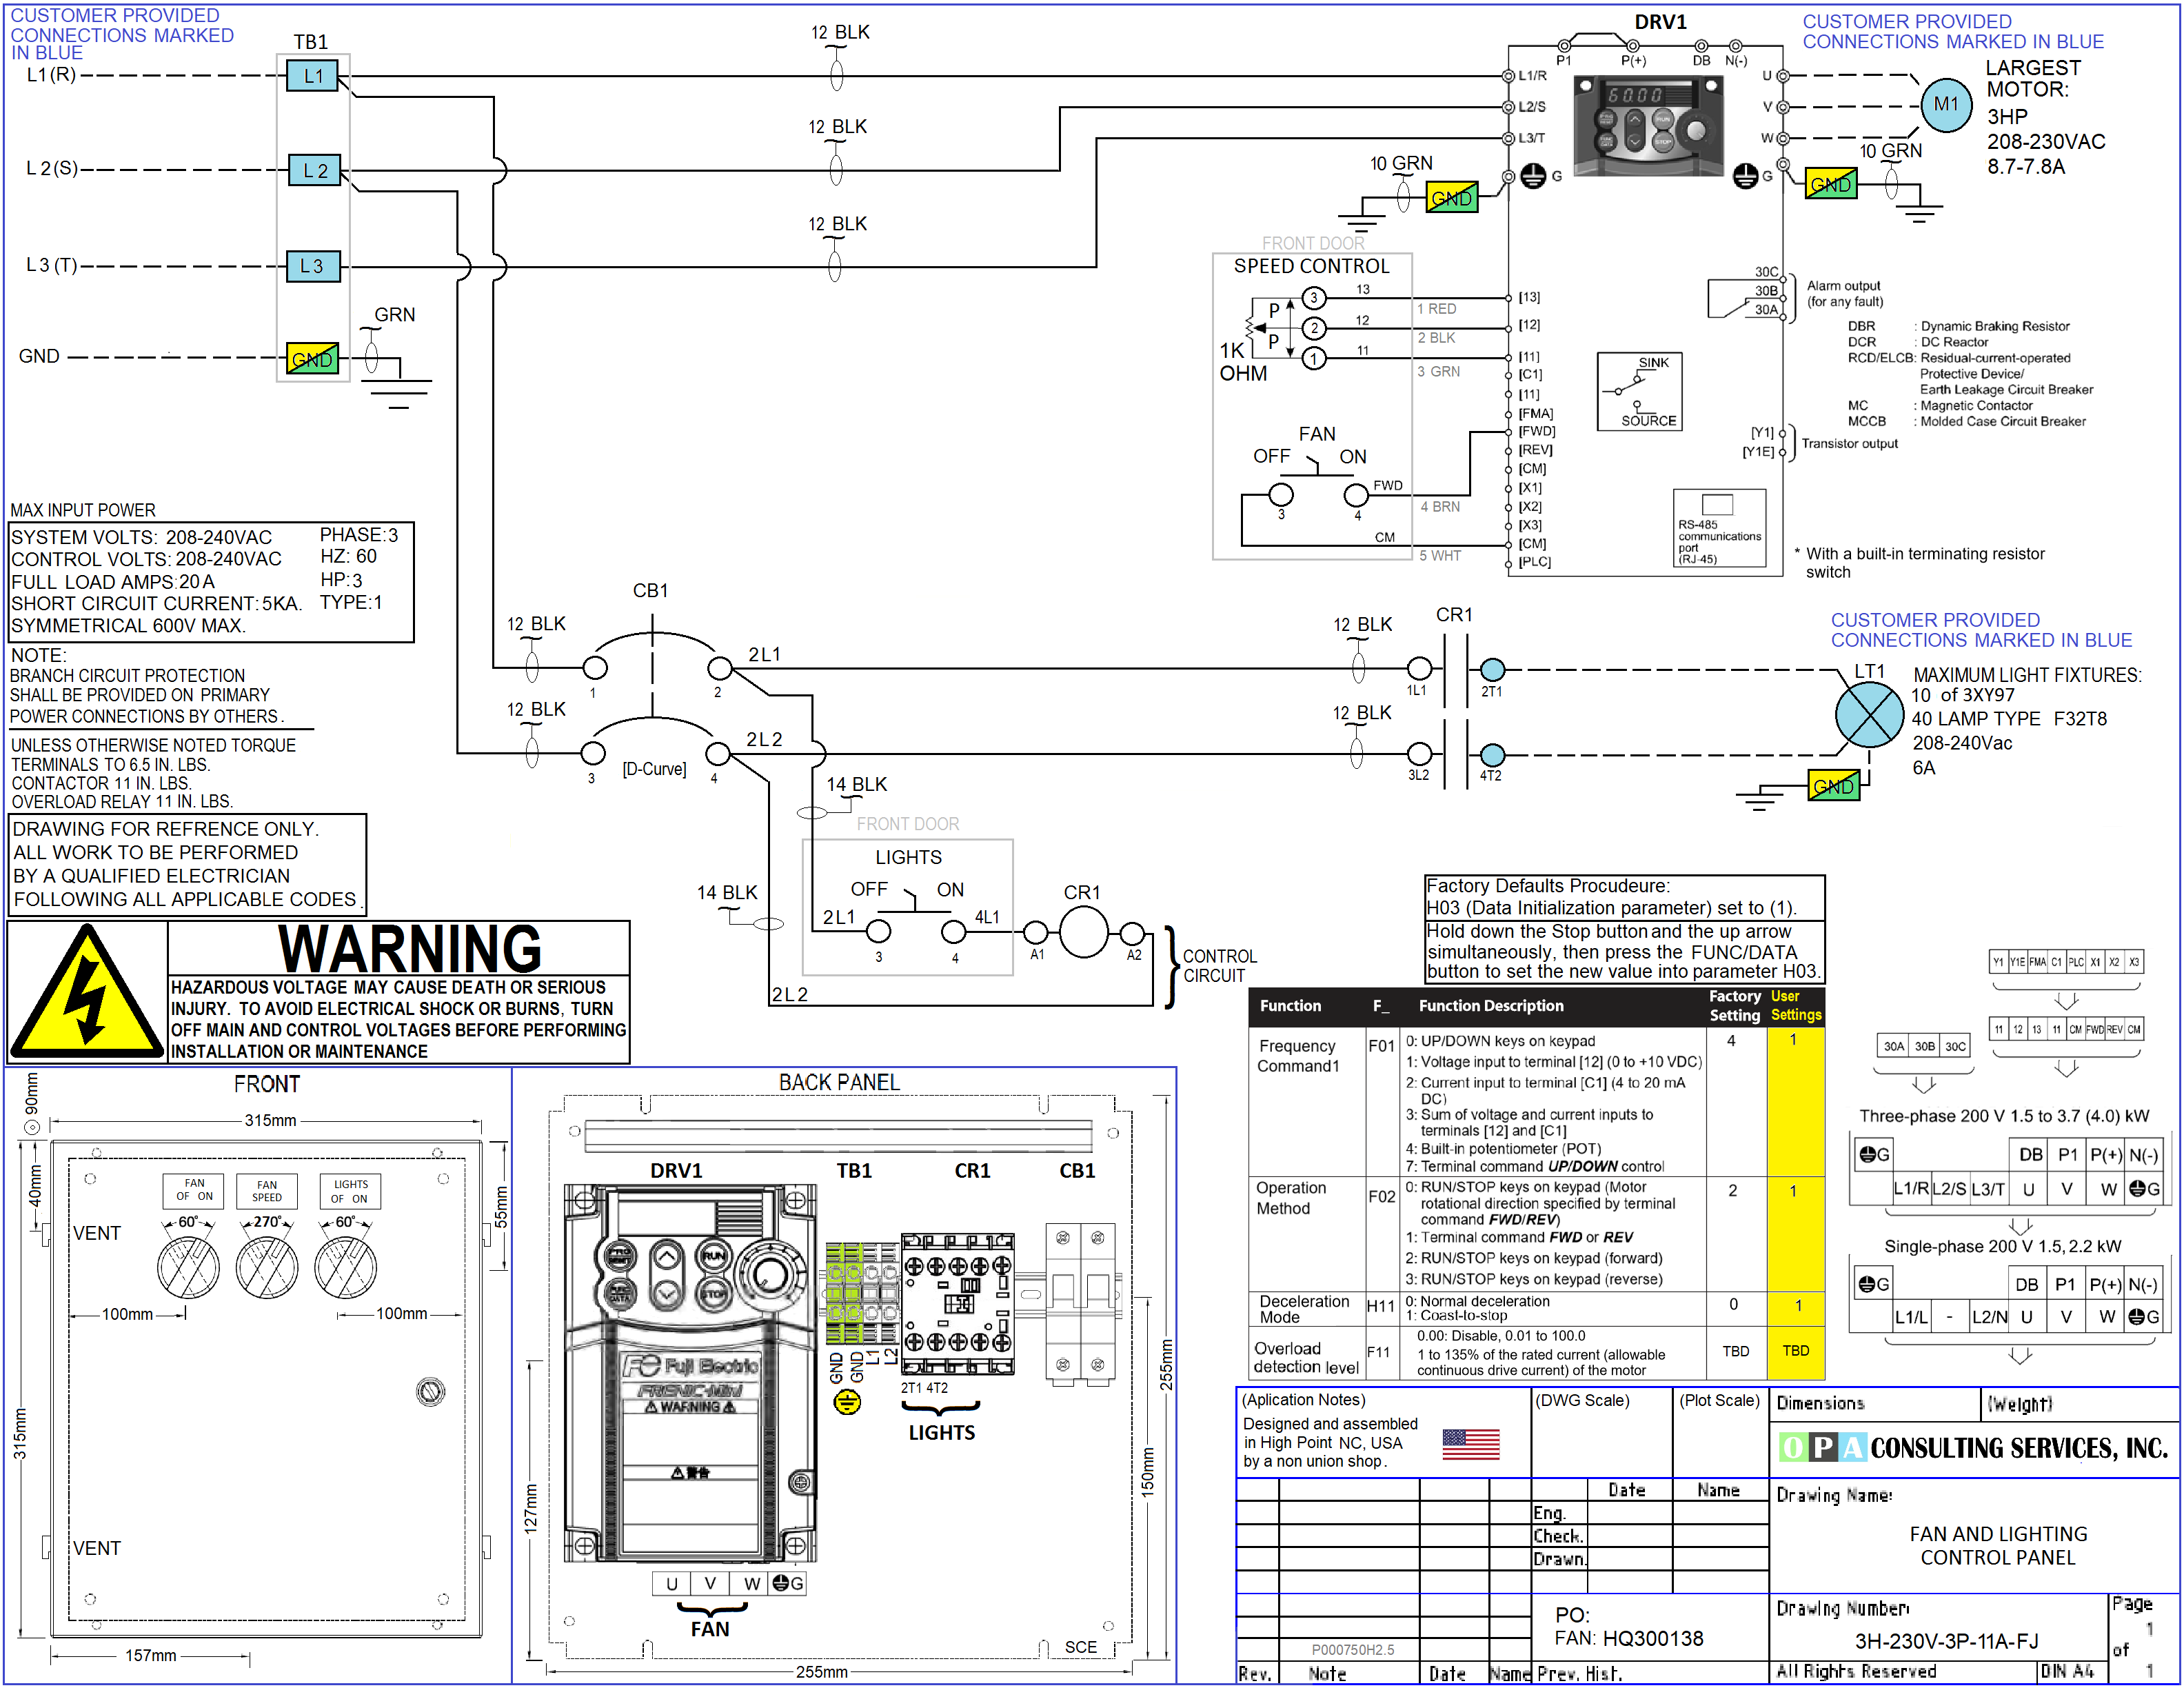 AE864AA Vfd Control Panel Wiring Diagram | Wiring LibraryWiring Library